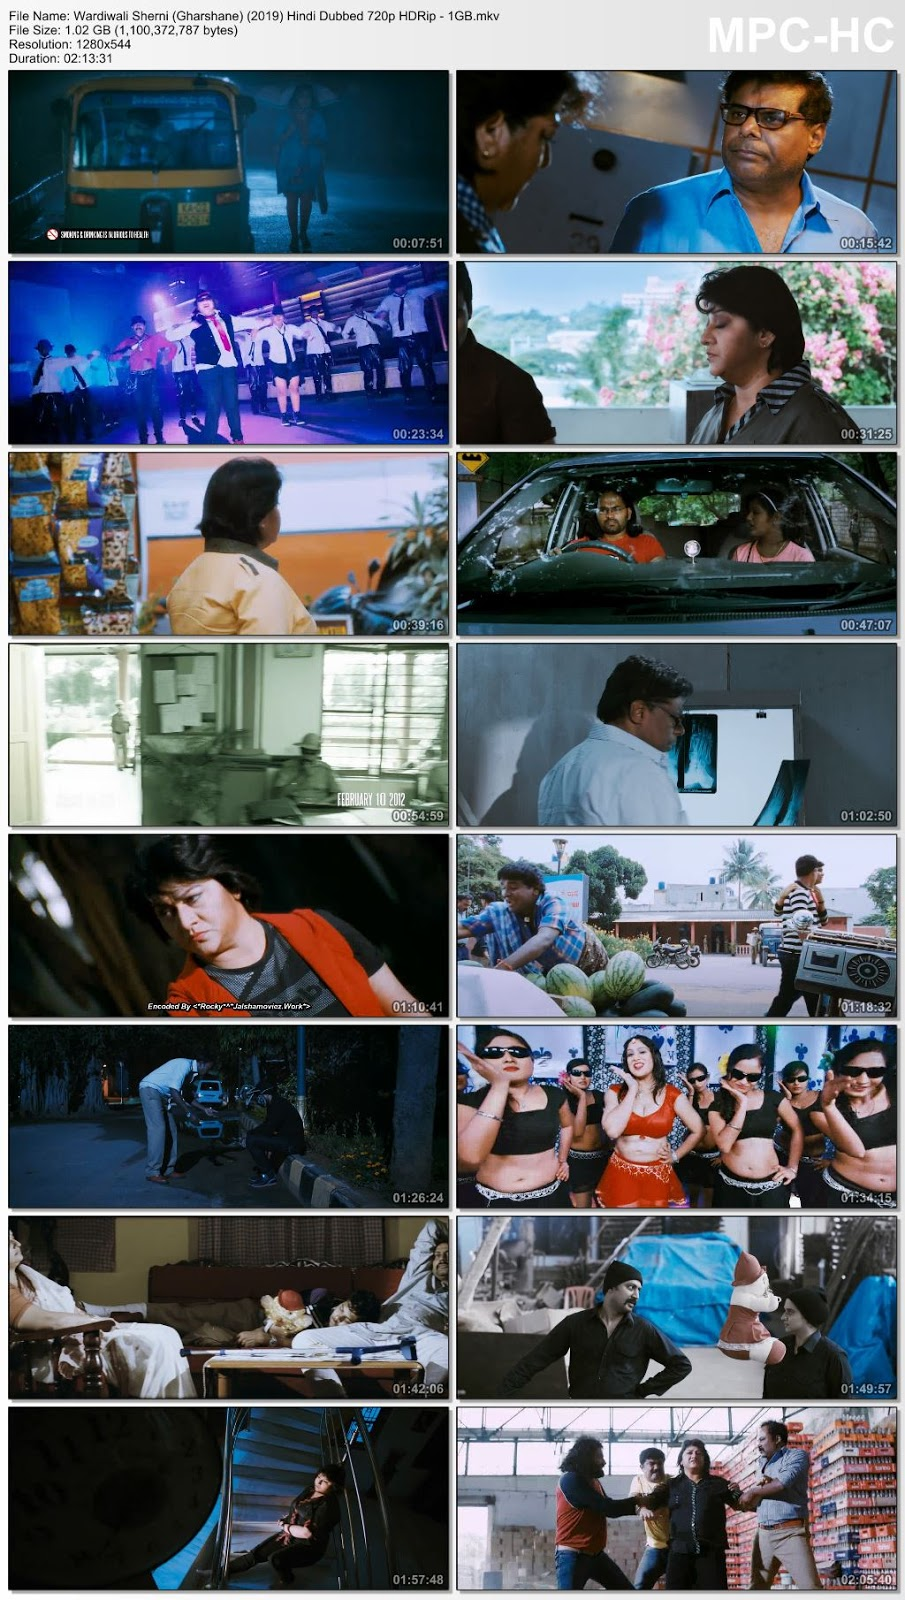 Wardiwali Sherni (Gharshane) (2019) Hindi Dubbed 720p HDRip – 1GB Desirehub